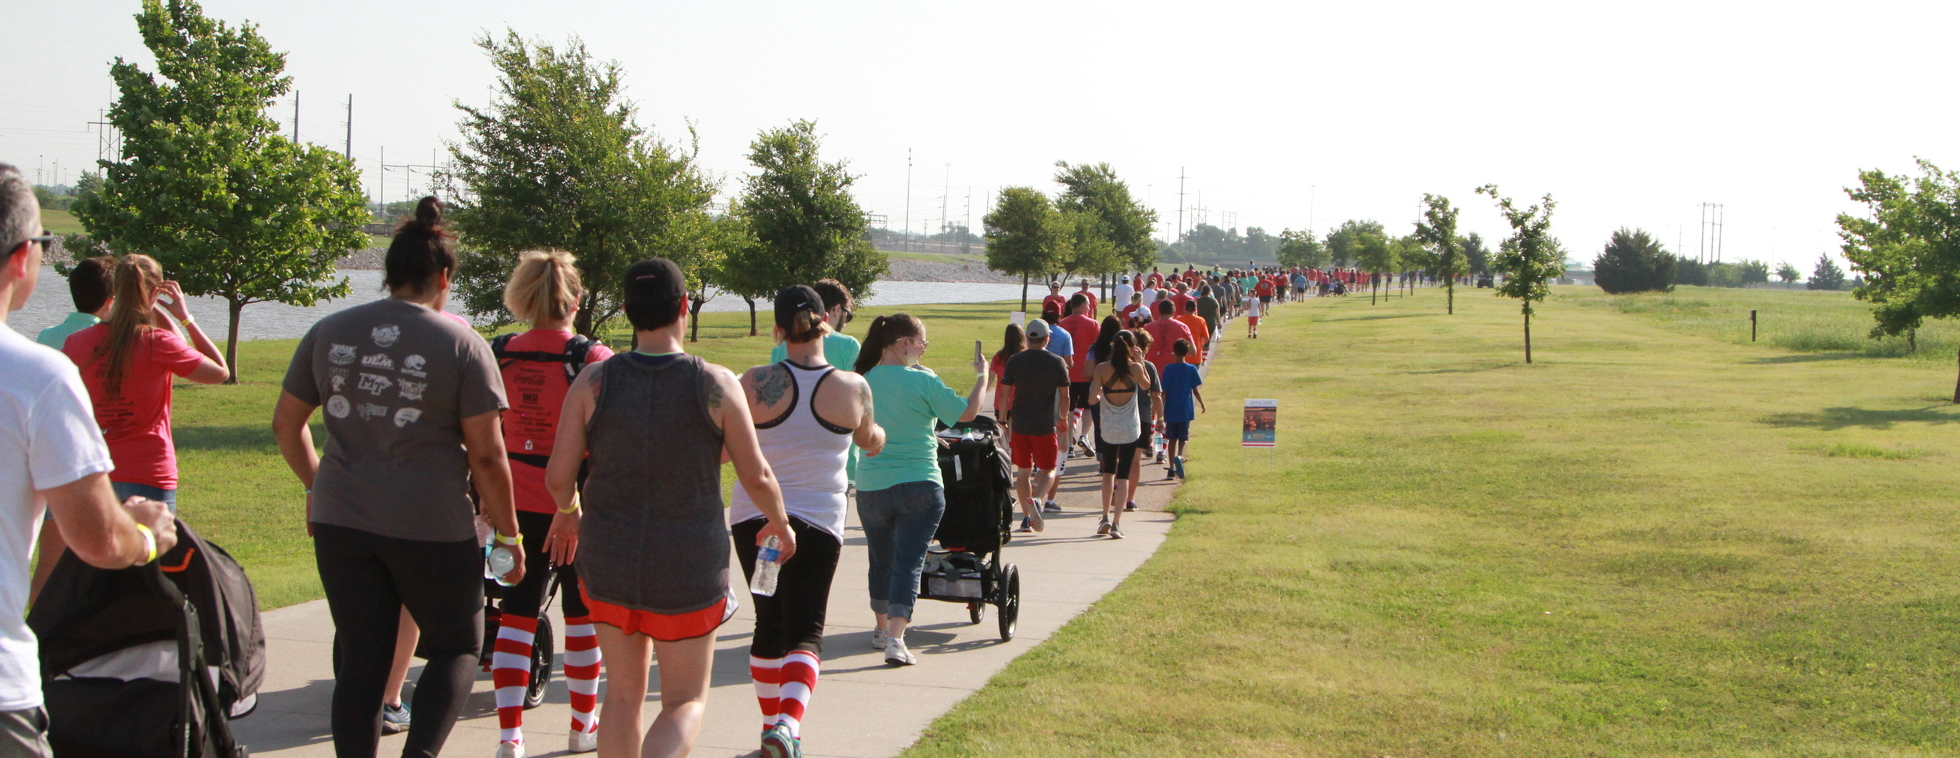 2019 Walk for Kids Oklahoma City